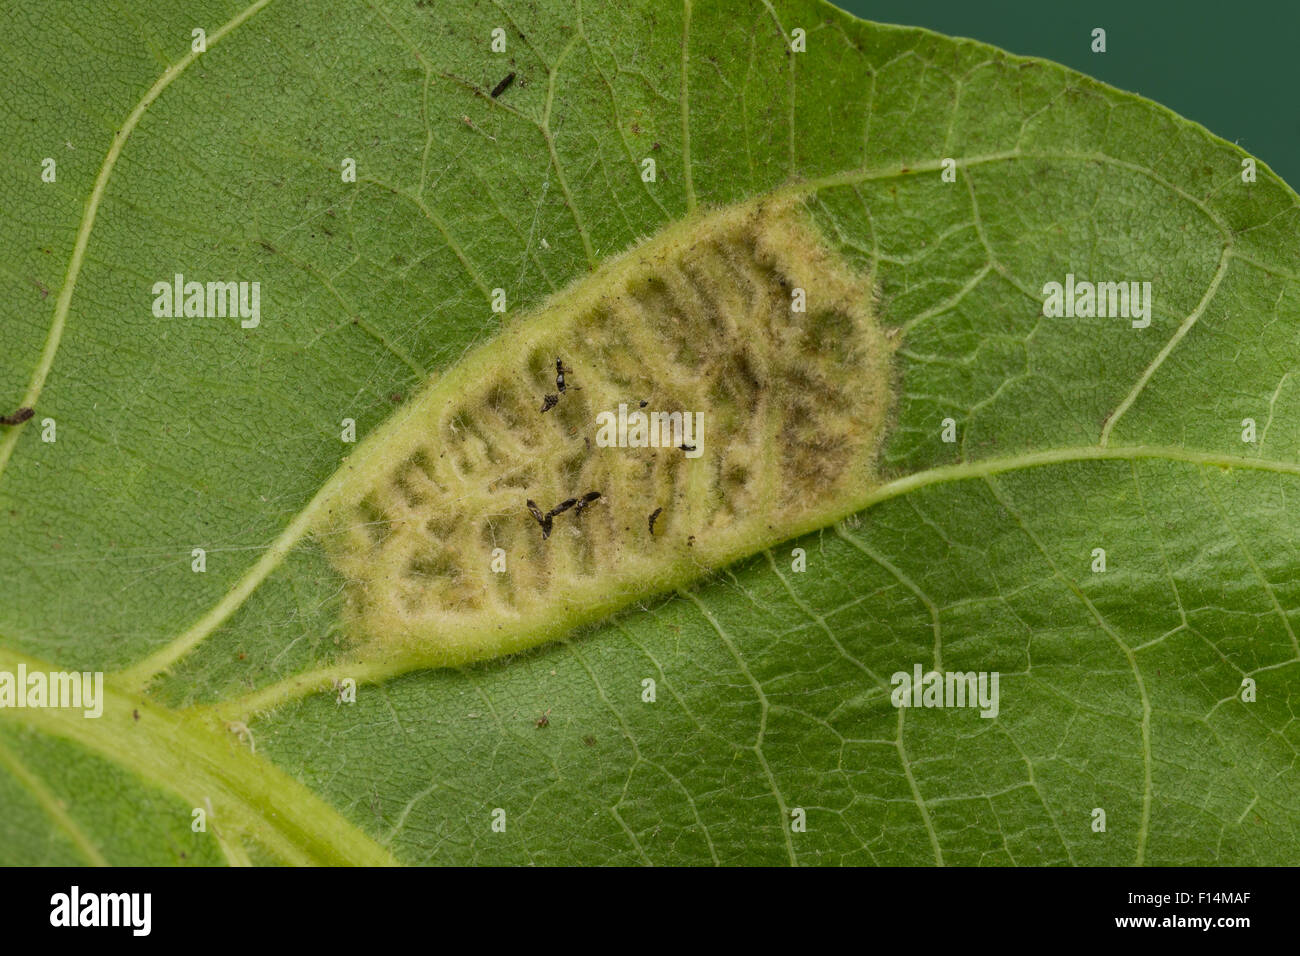 Walnut Erineum Mite, Walnut Leaf Gall Mite, walnut blister mite, Walnuss-Gallmilbe, Walnuß, Filzgallmilbe, - Stock Image